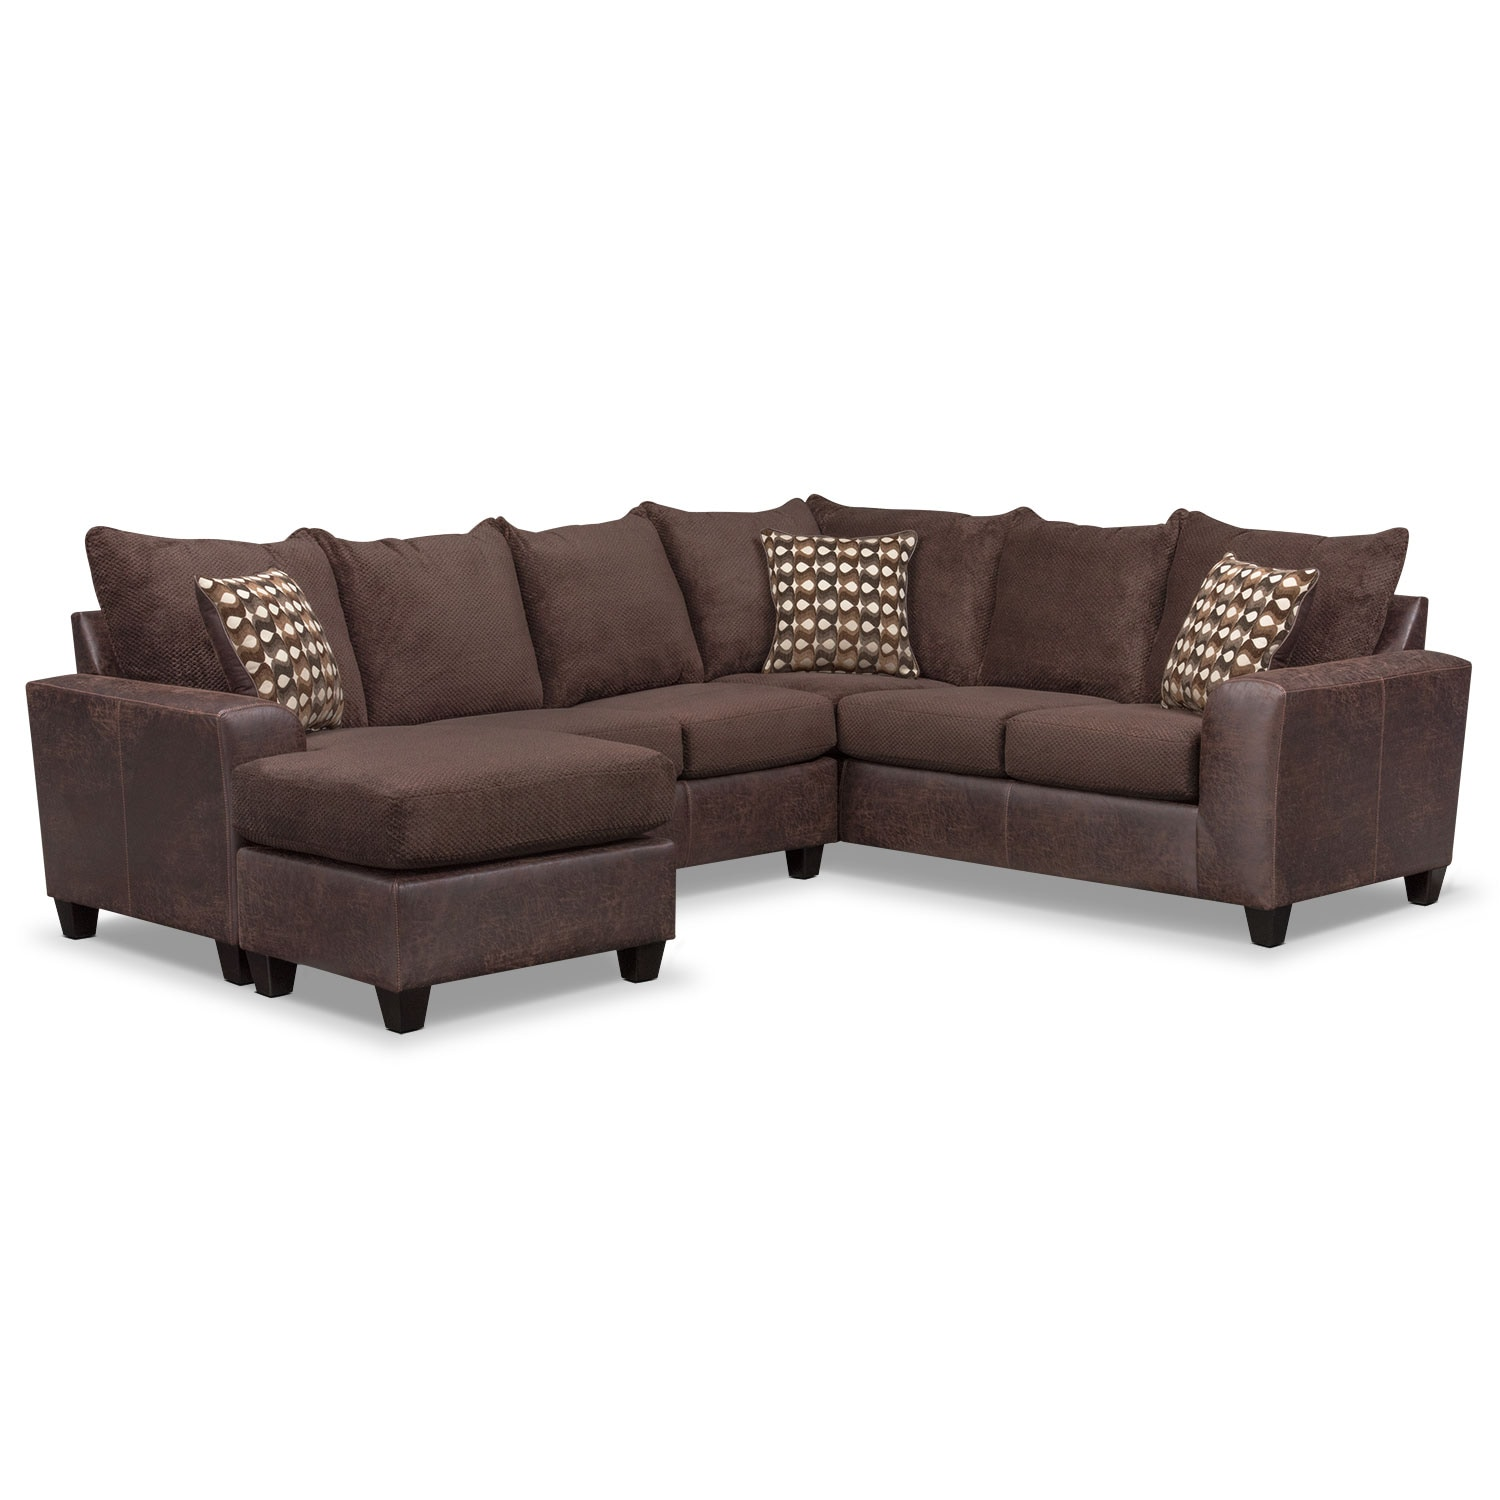 Brando 3 Piece Sectional With Modular Chaise   Chocolate By Factory Outlet